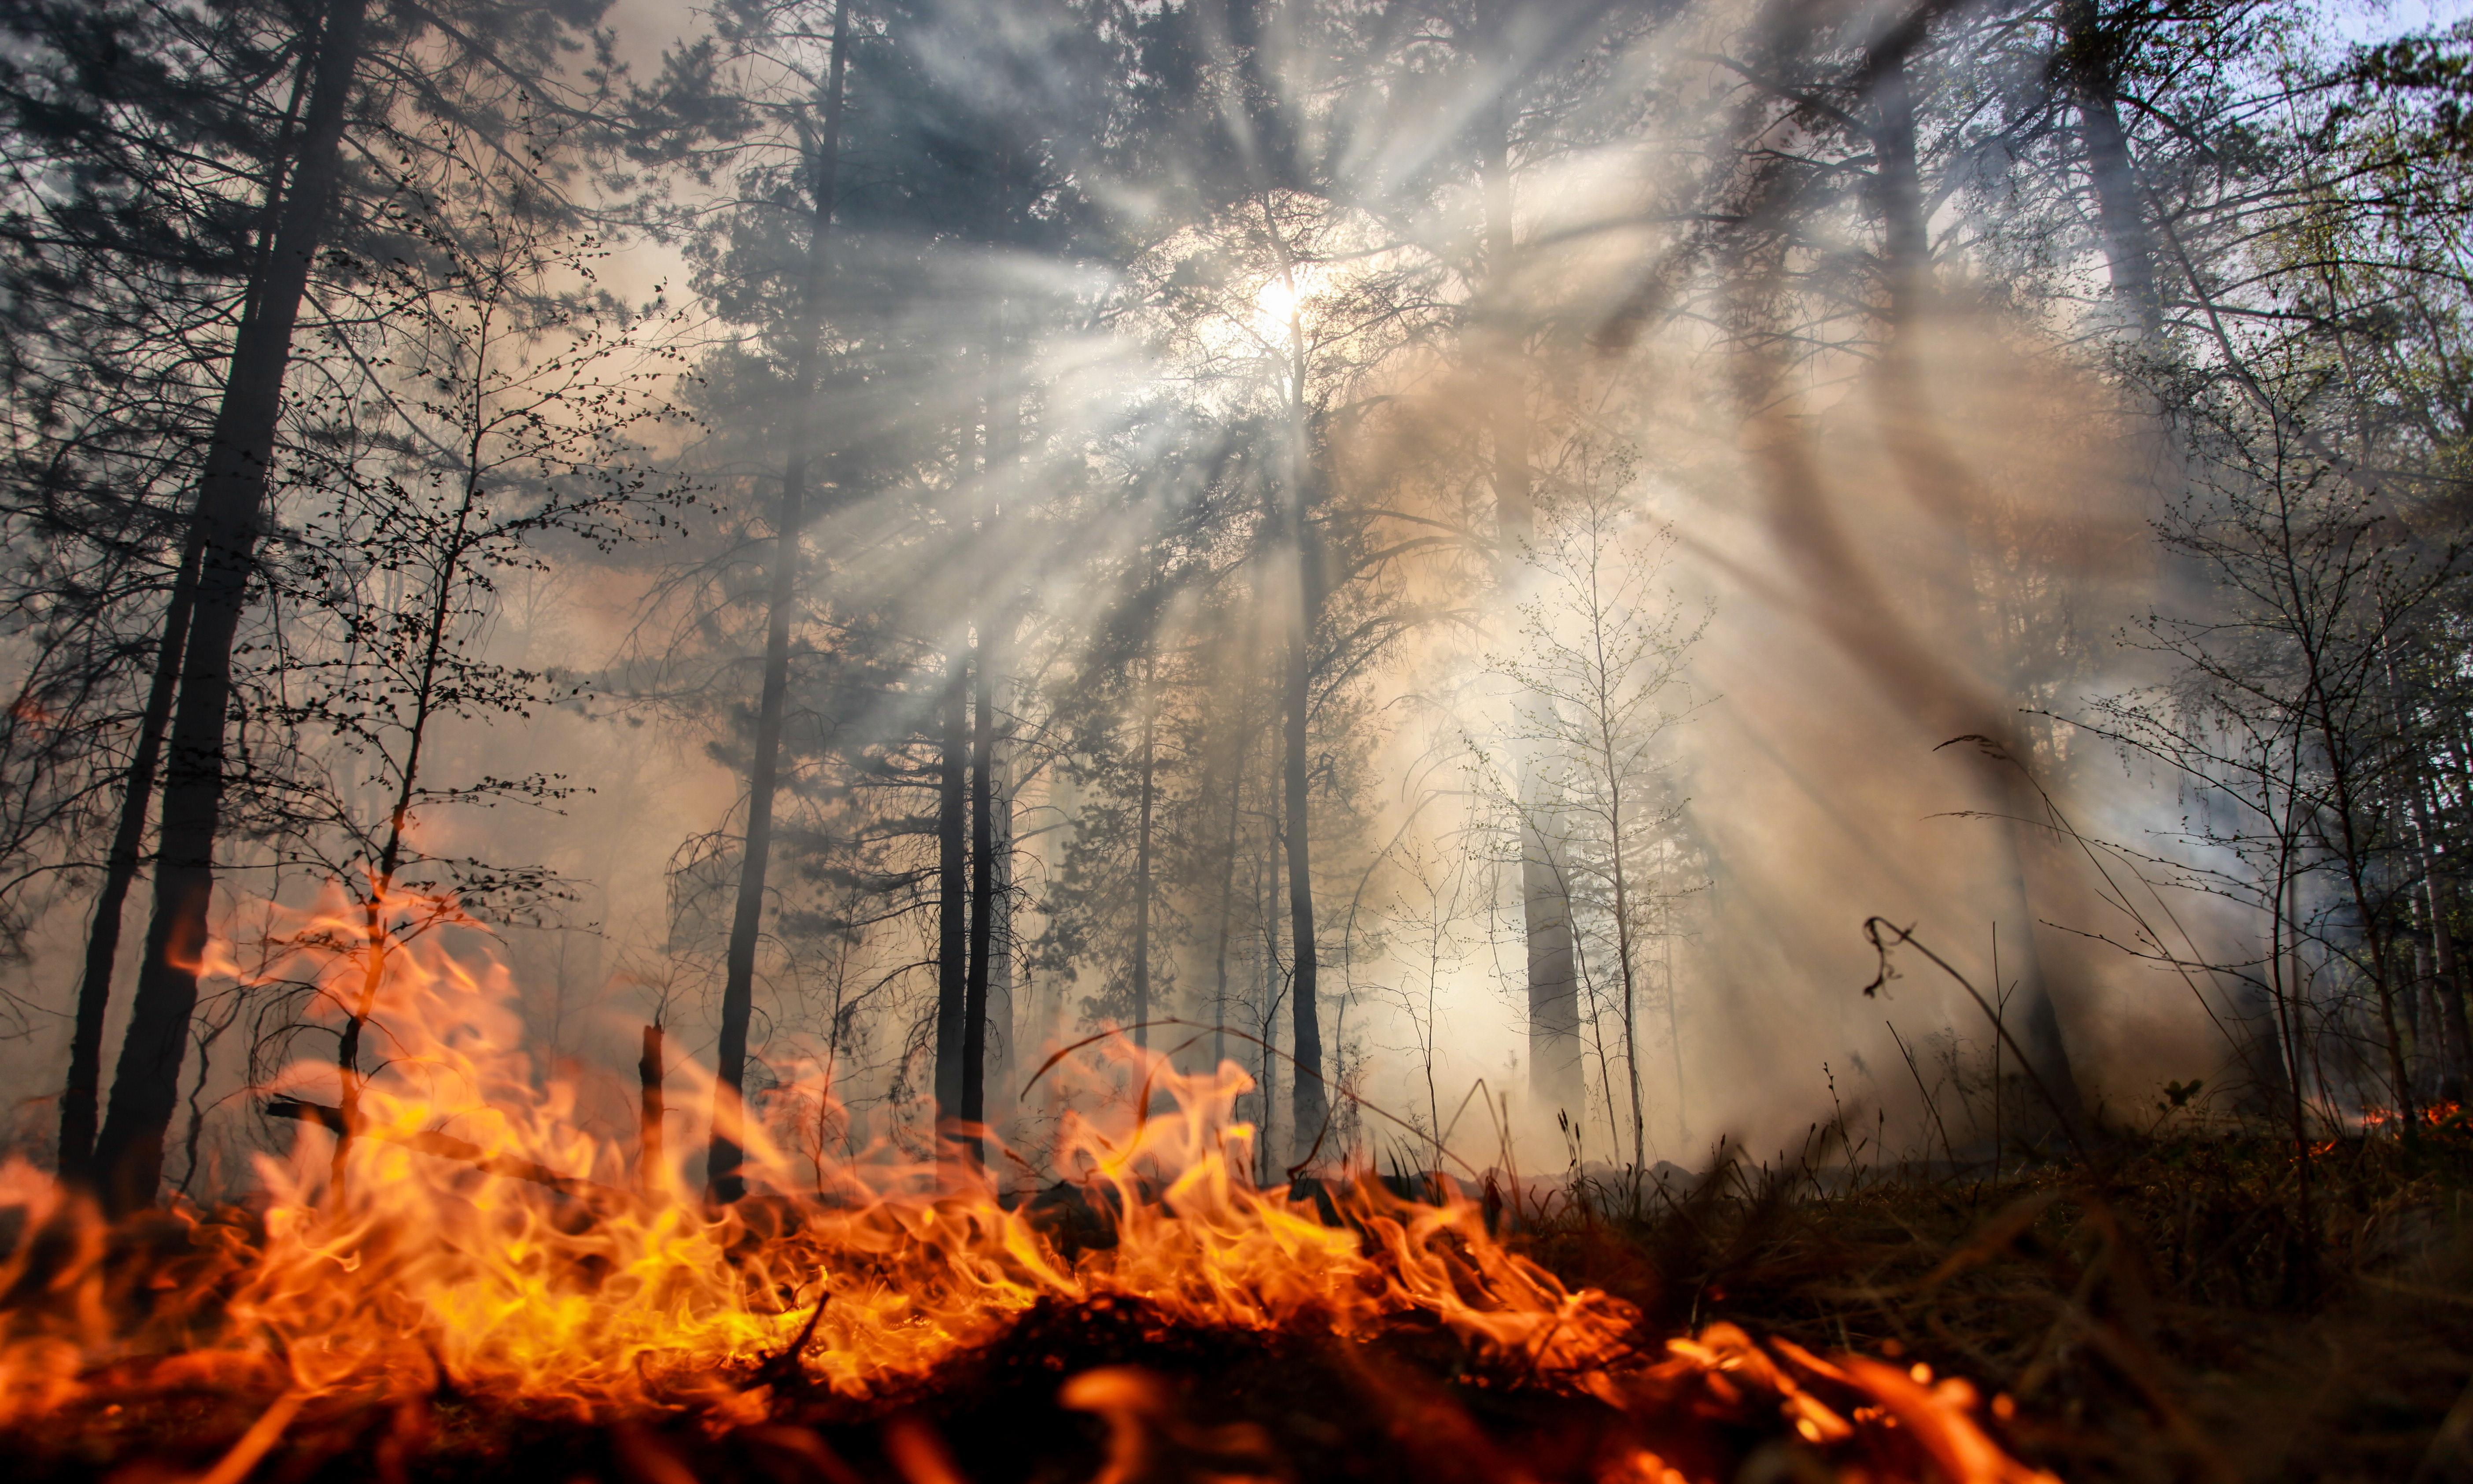 The world is literally on fire – so why is it business as usual for politicians?